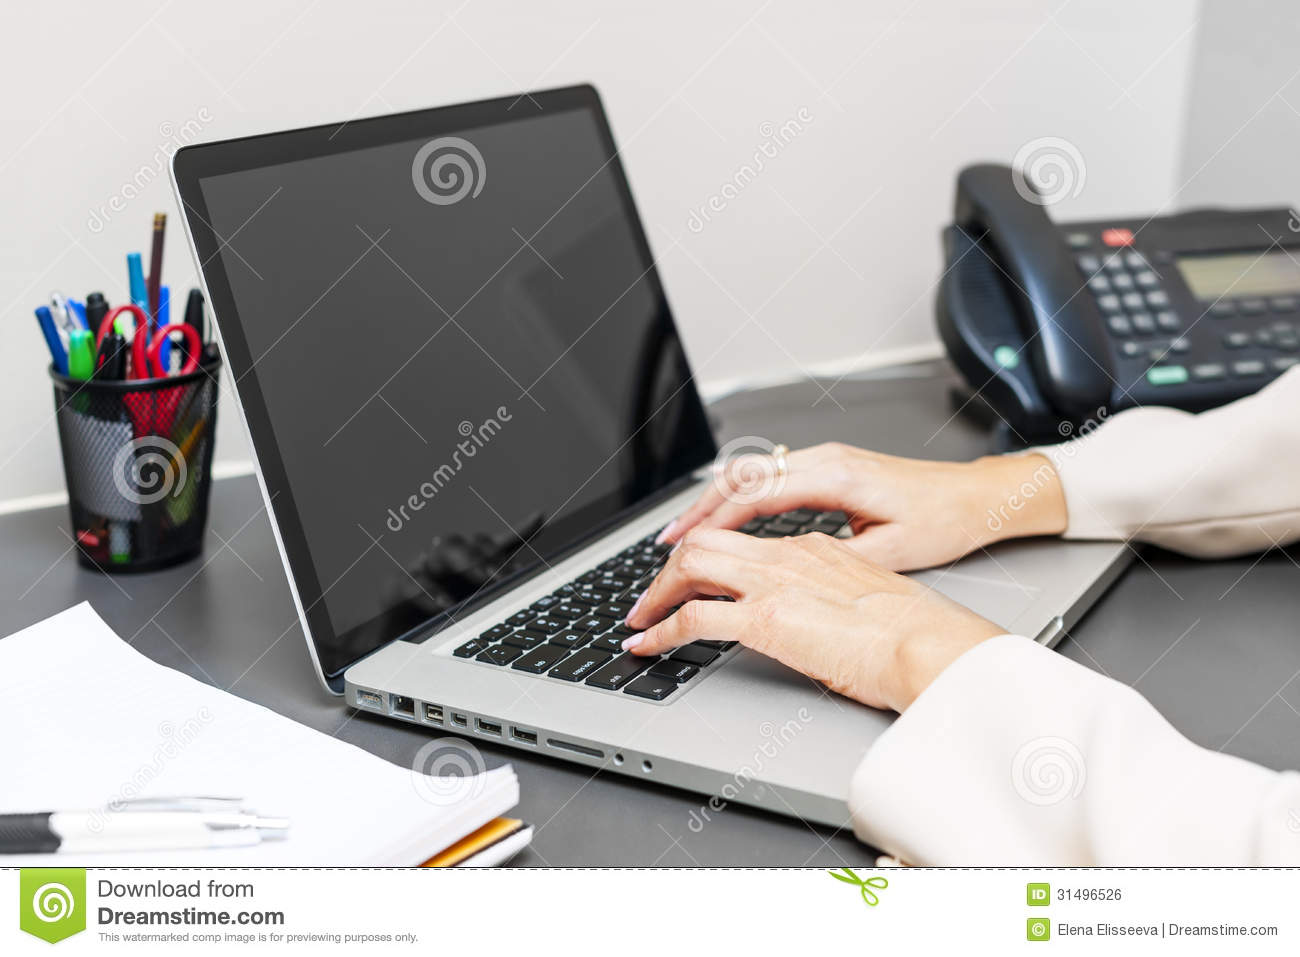 46798 further Stock Illustration Office Work Isometric Doodle Concept Vector Hand Drawn Illustration People Working Busy Working Image96760485 moreover Royalty Free Stock Image Hands Typing Laptop Keyboard Female Office Desk Image31496526 also Royalty Free Stock Photo Boss Caughts Employee Not Working Illustration Featuring Meg Talking Phone Applying Nail Polish Desk Her Bob Image32680325 in addition Watch. on office max desk phone